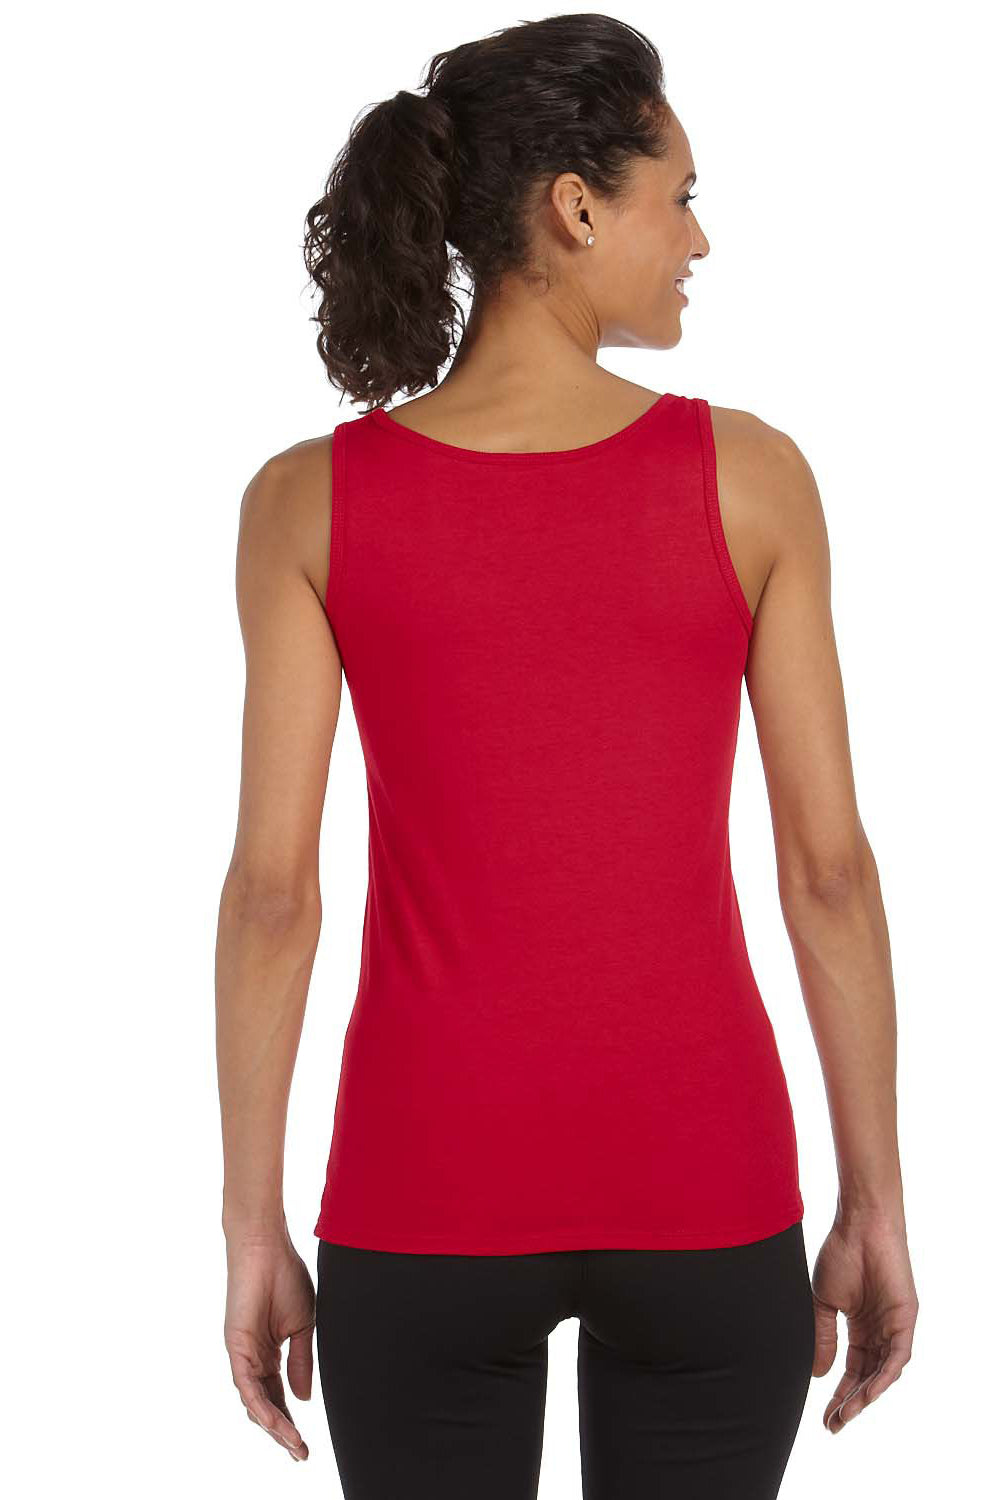 Gildan G642L Womens Softstyle Tank Top Cherry Red Back